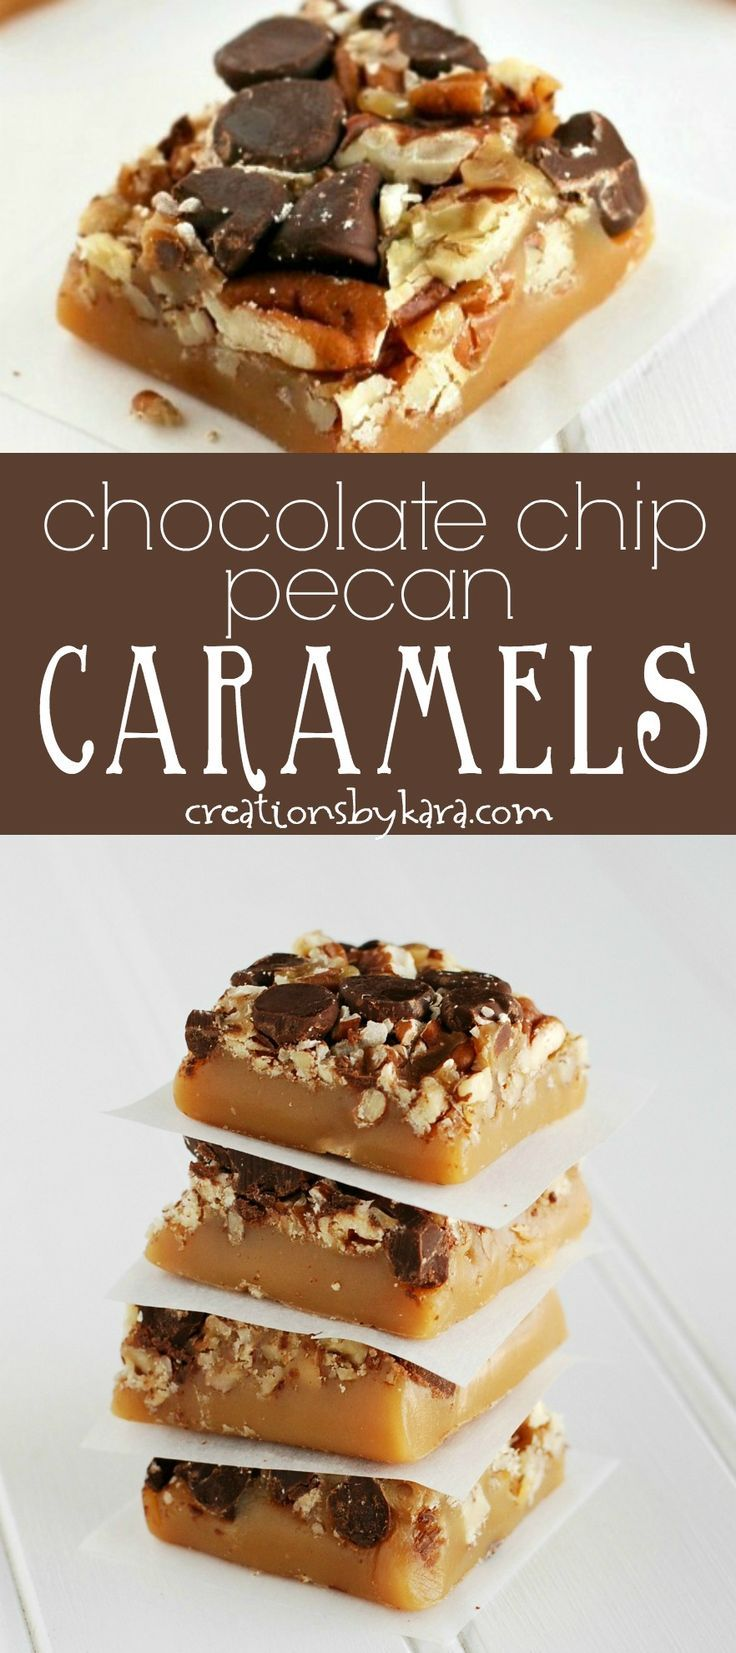 Chocolate Chip Pecan Caramels - if you love turtle candies, you must make this recipe for homemade caramels. They are so decadent! #caramels #candyrecipe via creationsbykara.com